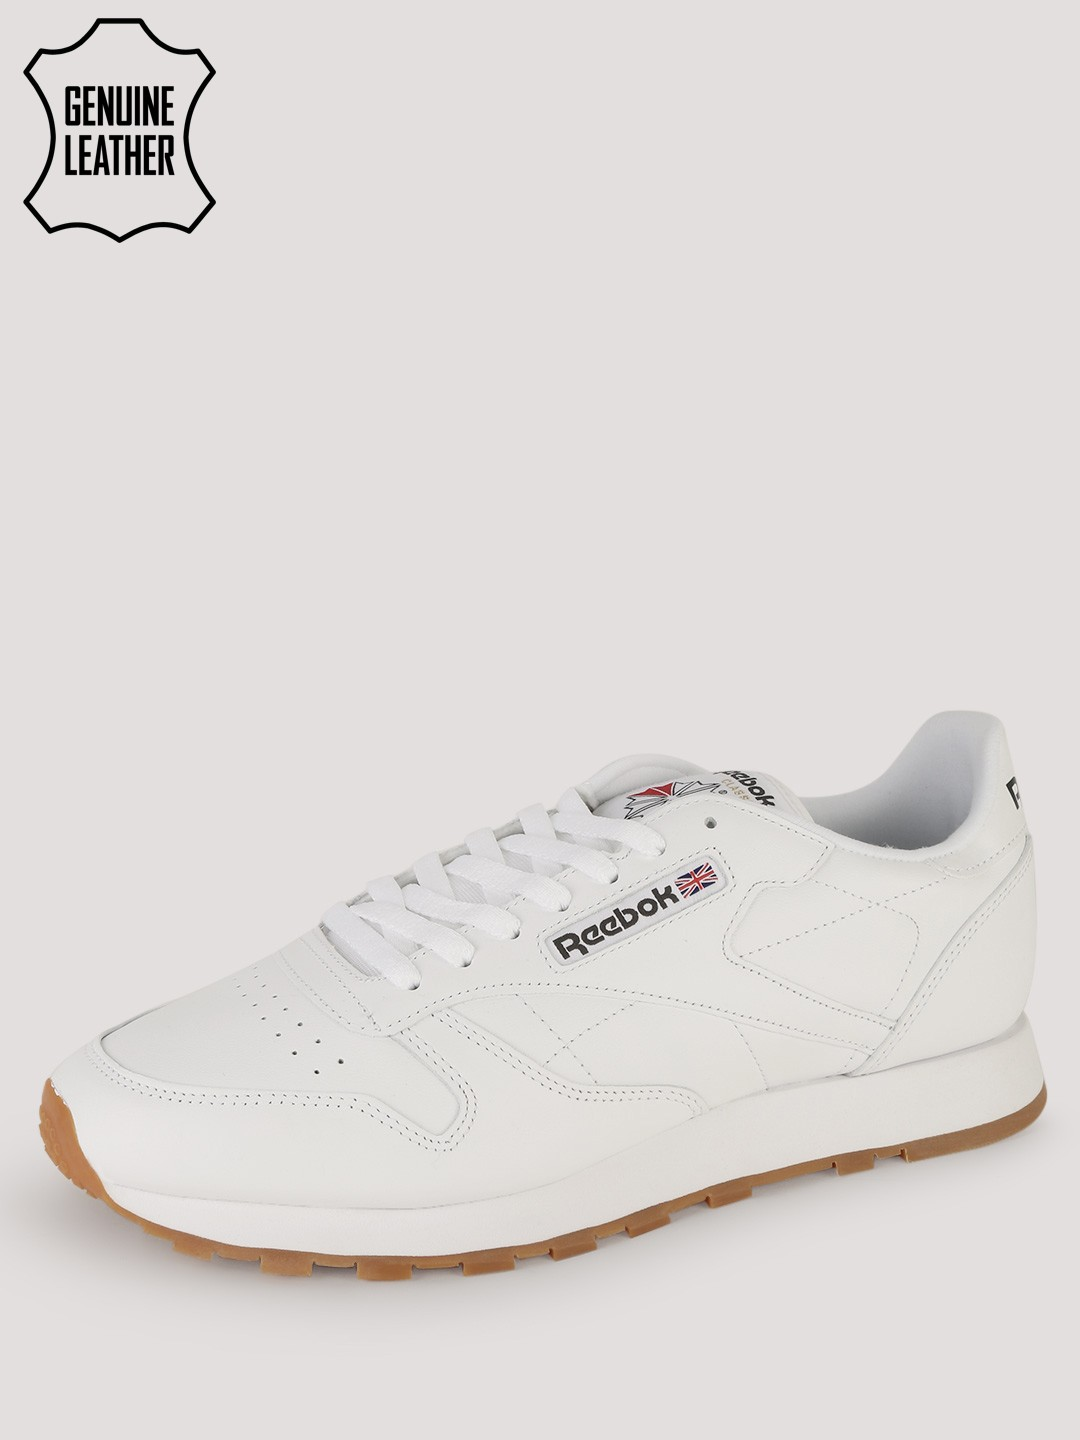 14f2d549d11 where can i buy reebok classics cheap   OFF79% The Largest Catalog ...